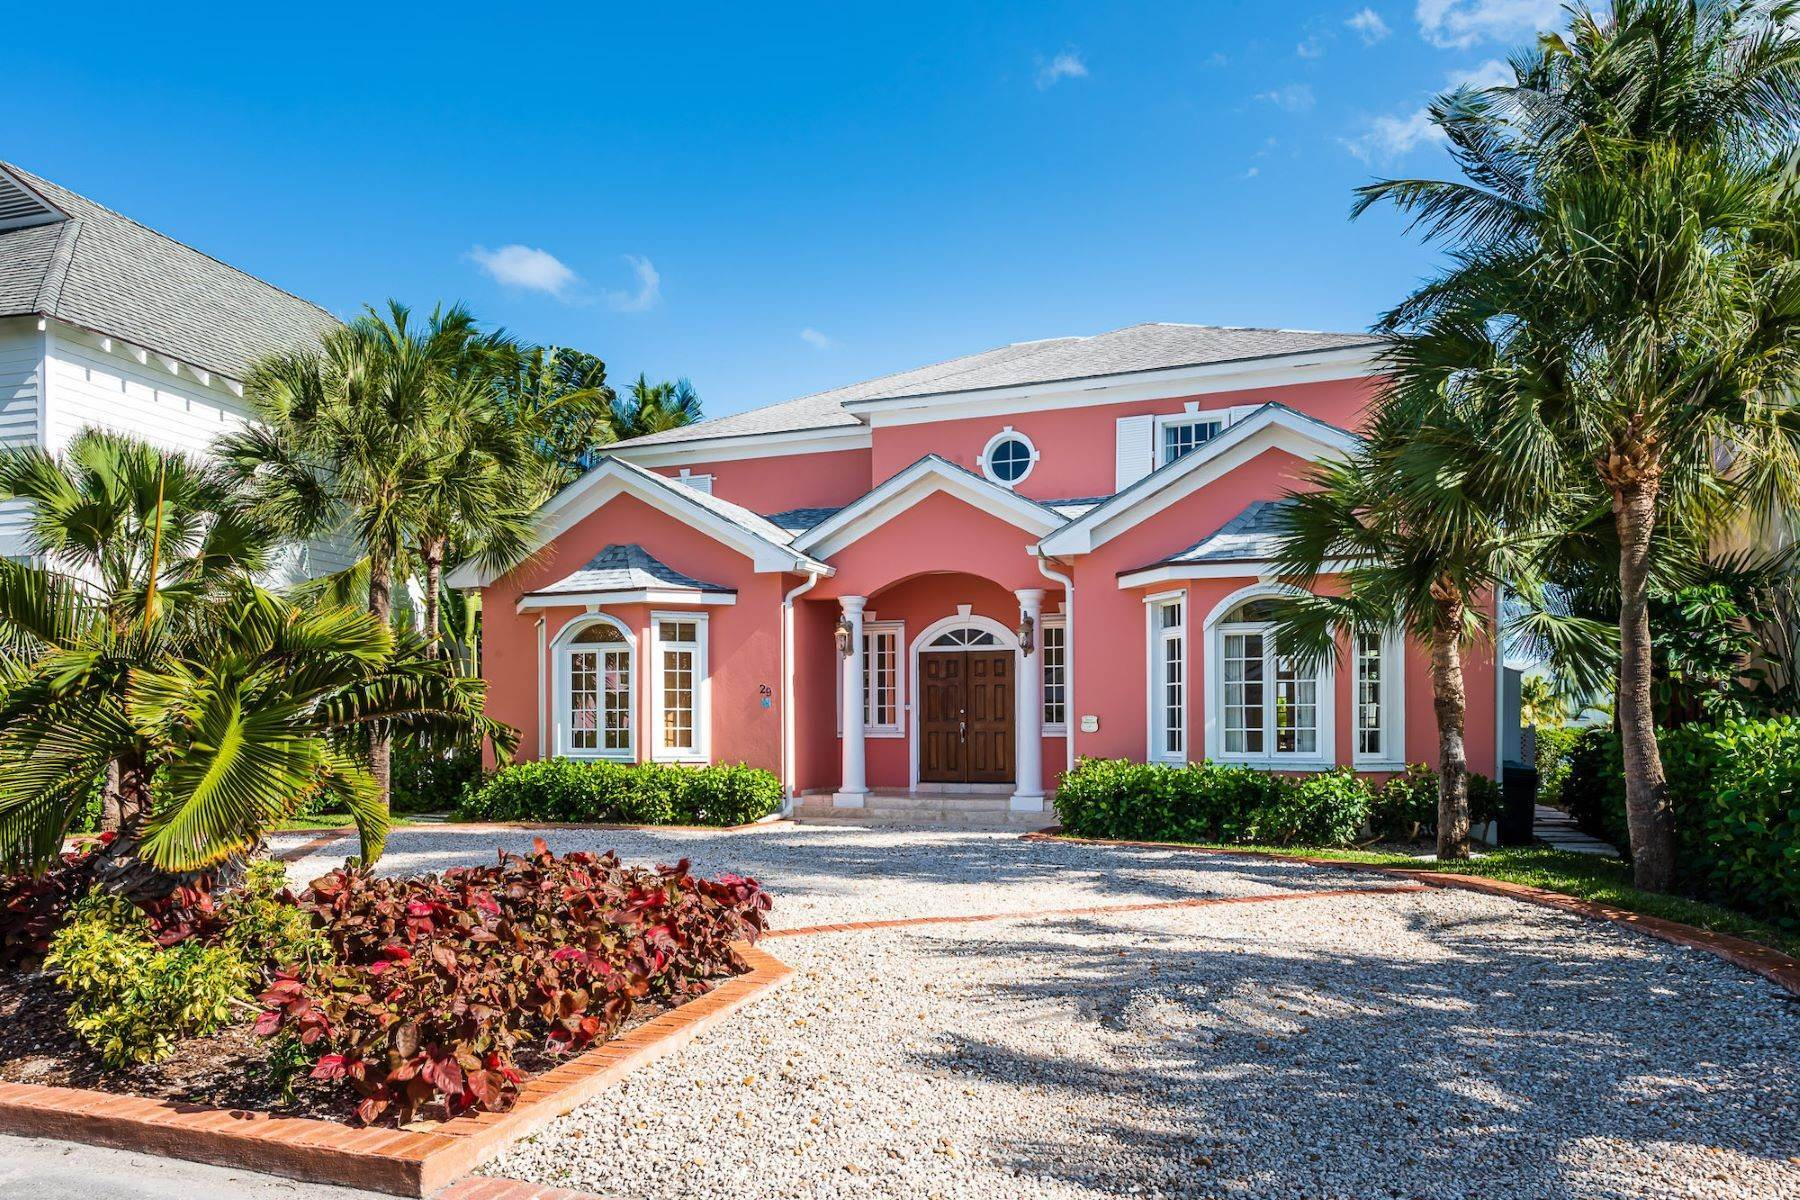 Single Family Homes for Sale at #29 Kingfisher Island, Sandyport Sandyport, Cable Beach, Nassau And Paradise Island Bahamas